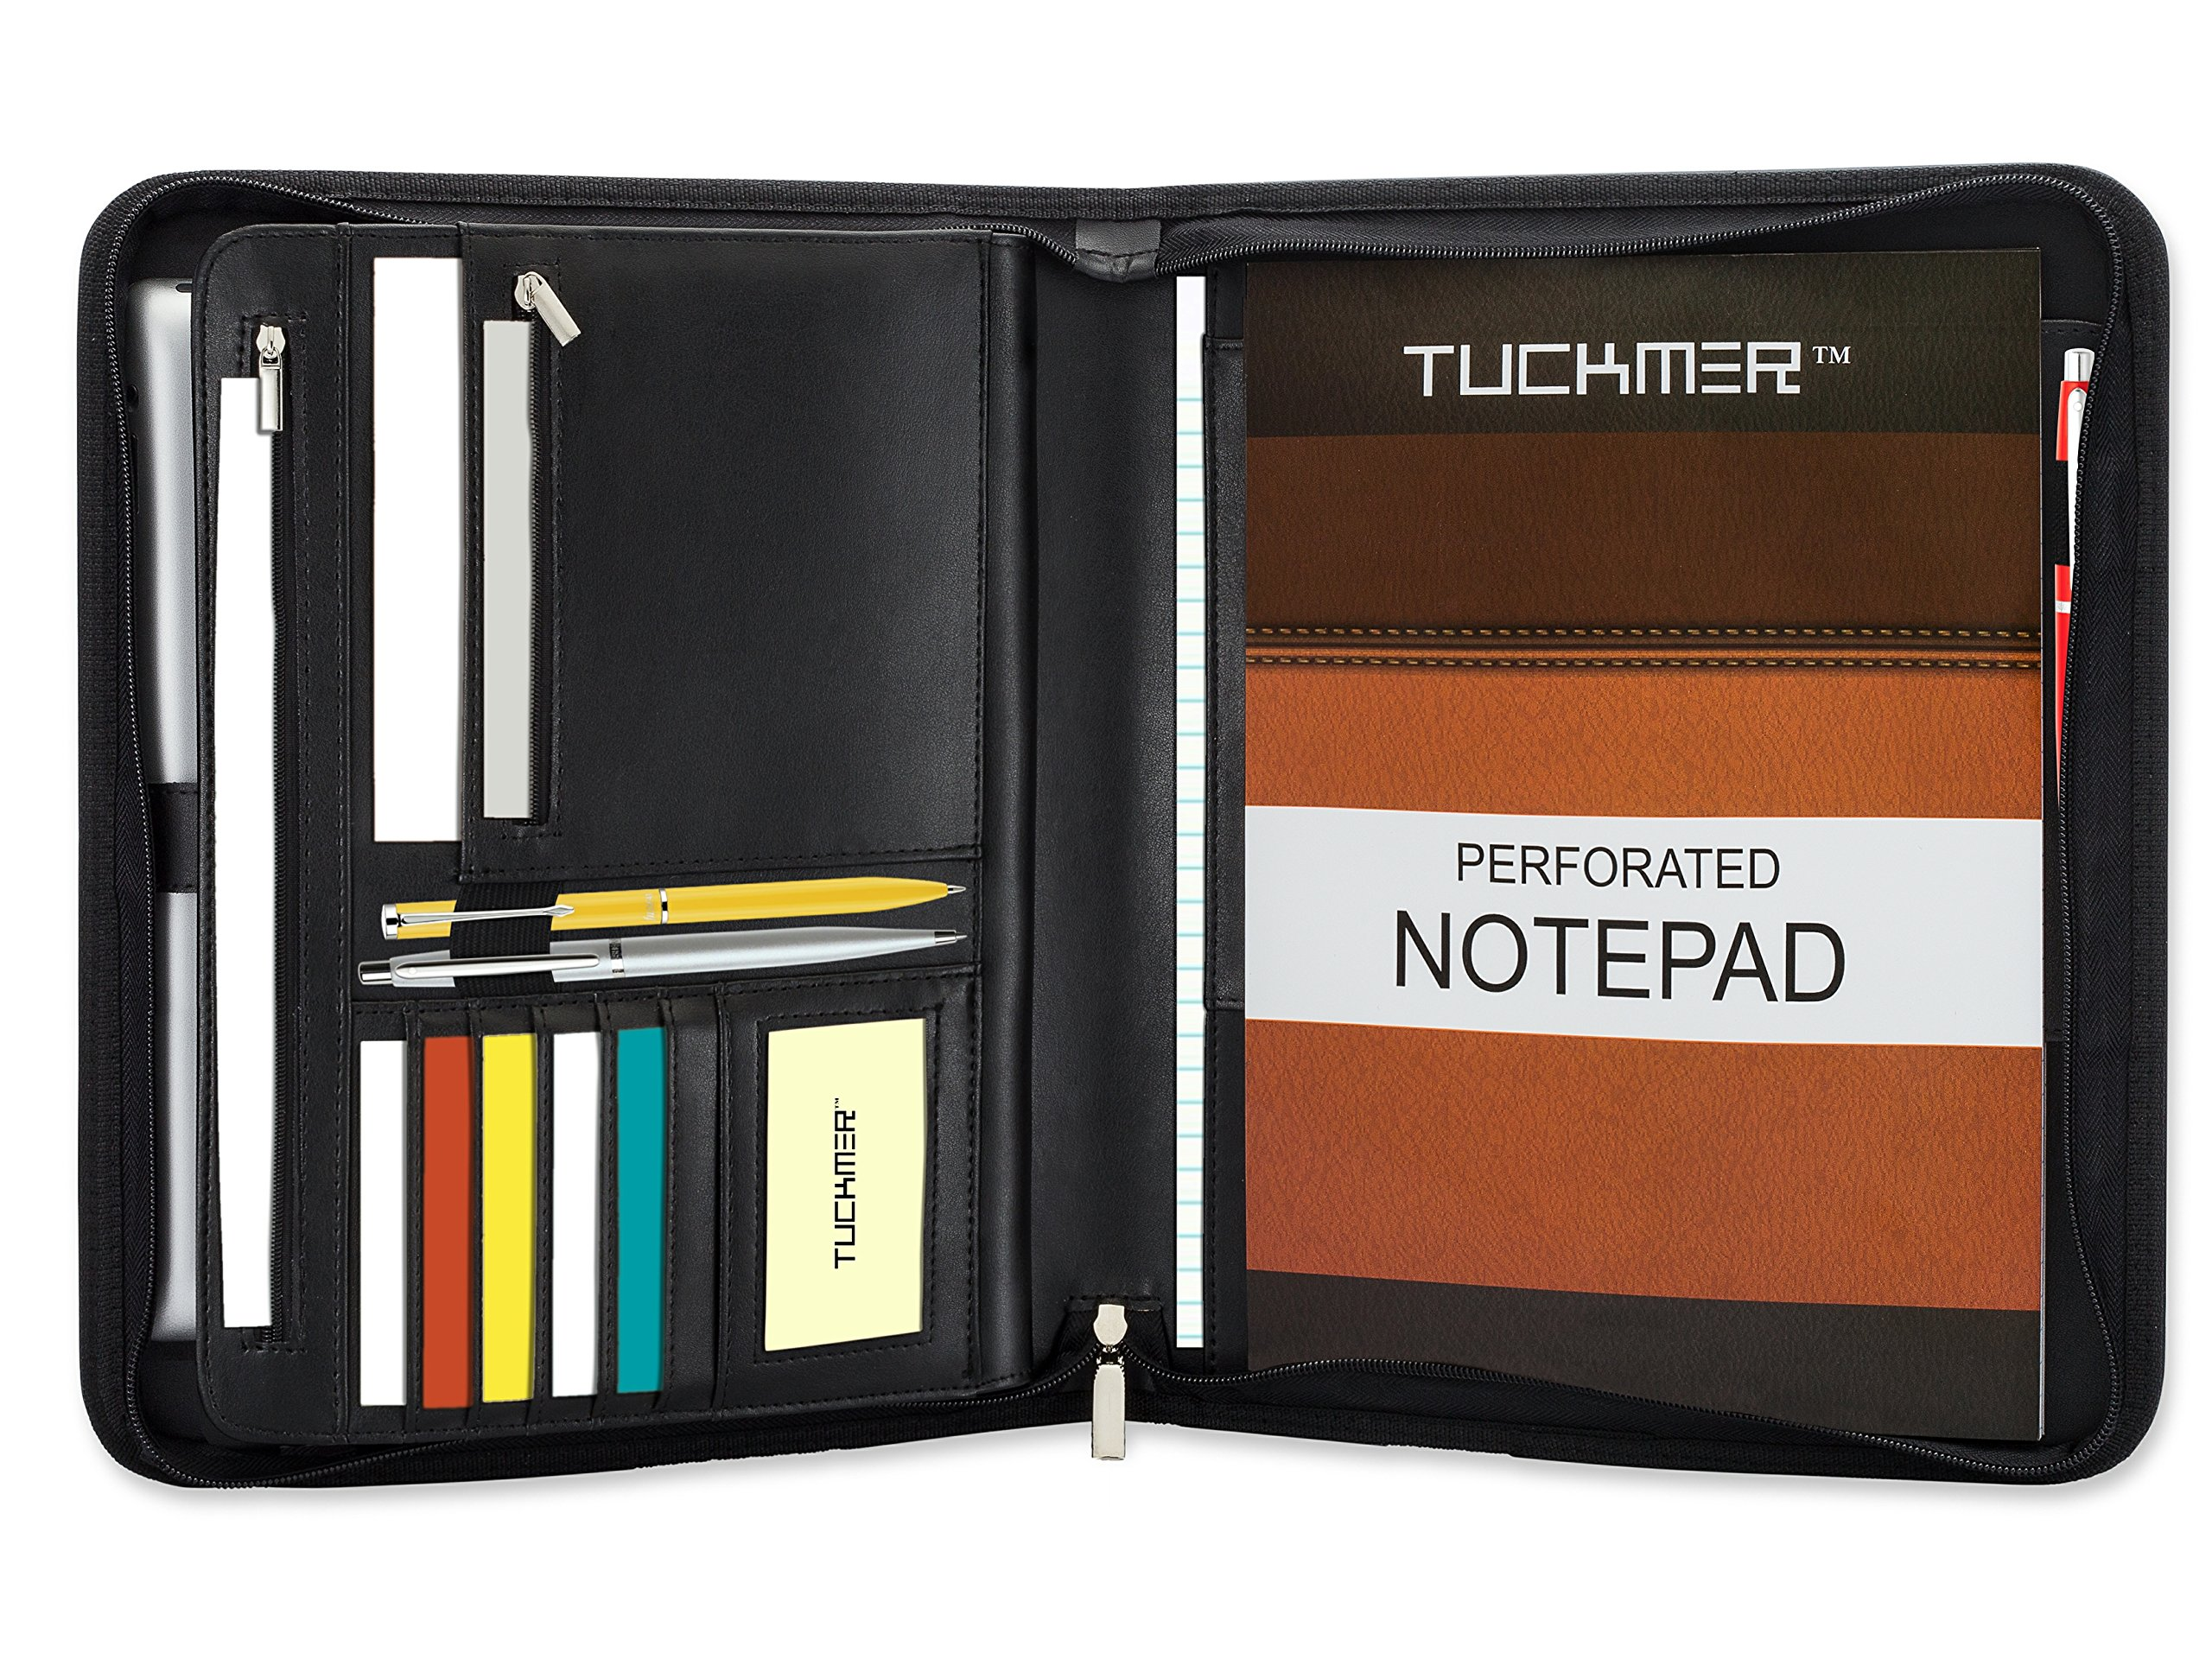 TUCKMER Padfolio with Zipper Business Zippered Portfolio Organizer Binder Expandable Tablet Holder and Spiral Calendar Notebook Pocket | Include Notepad